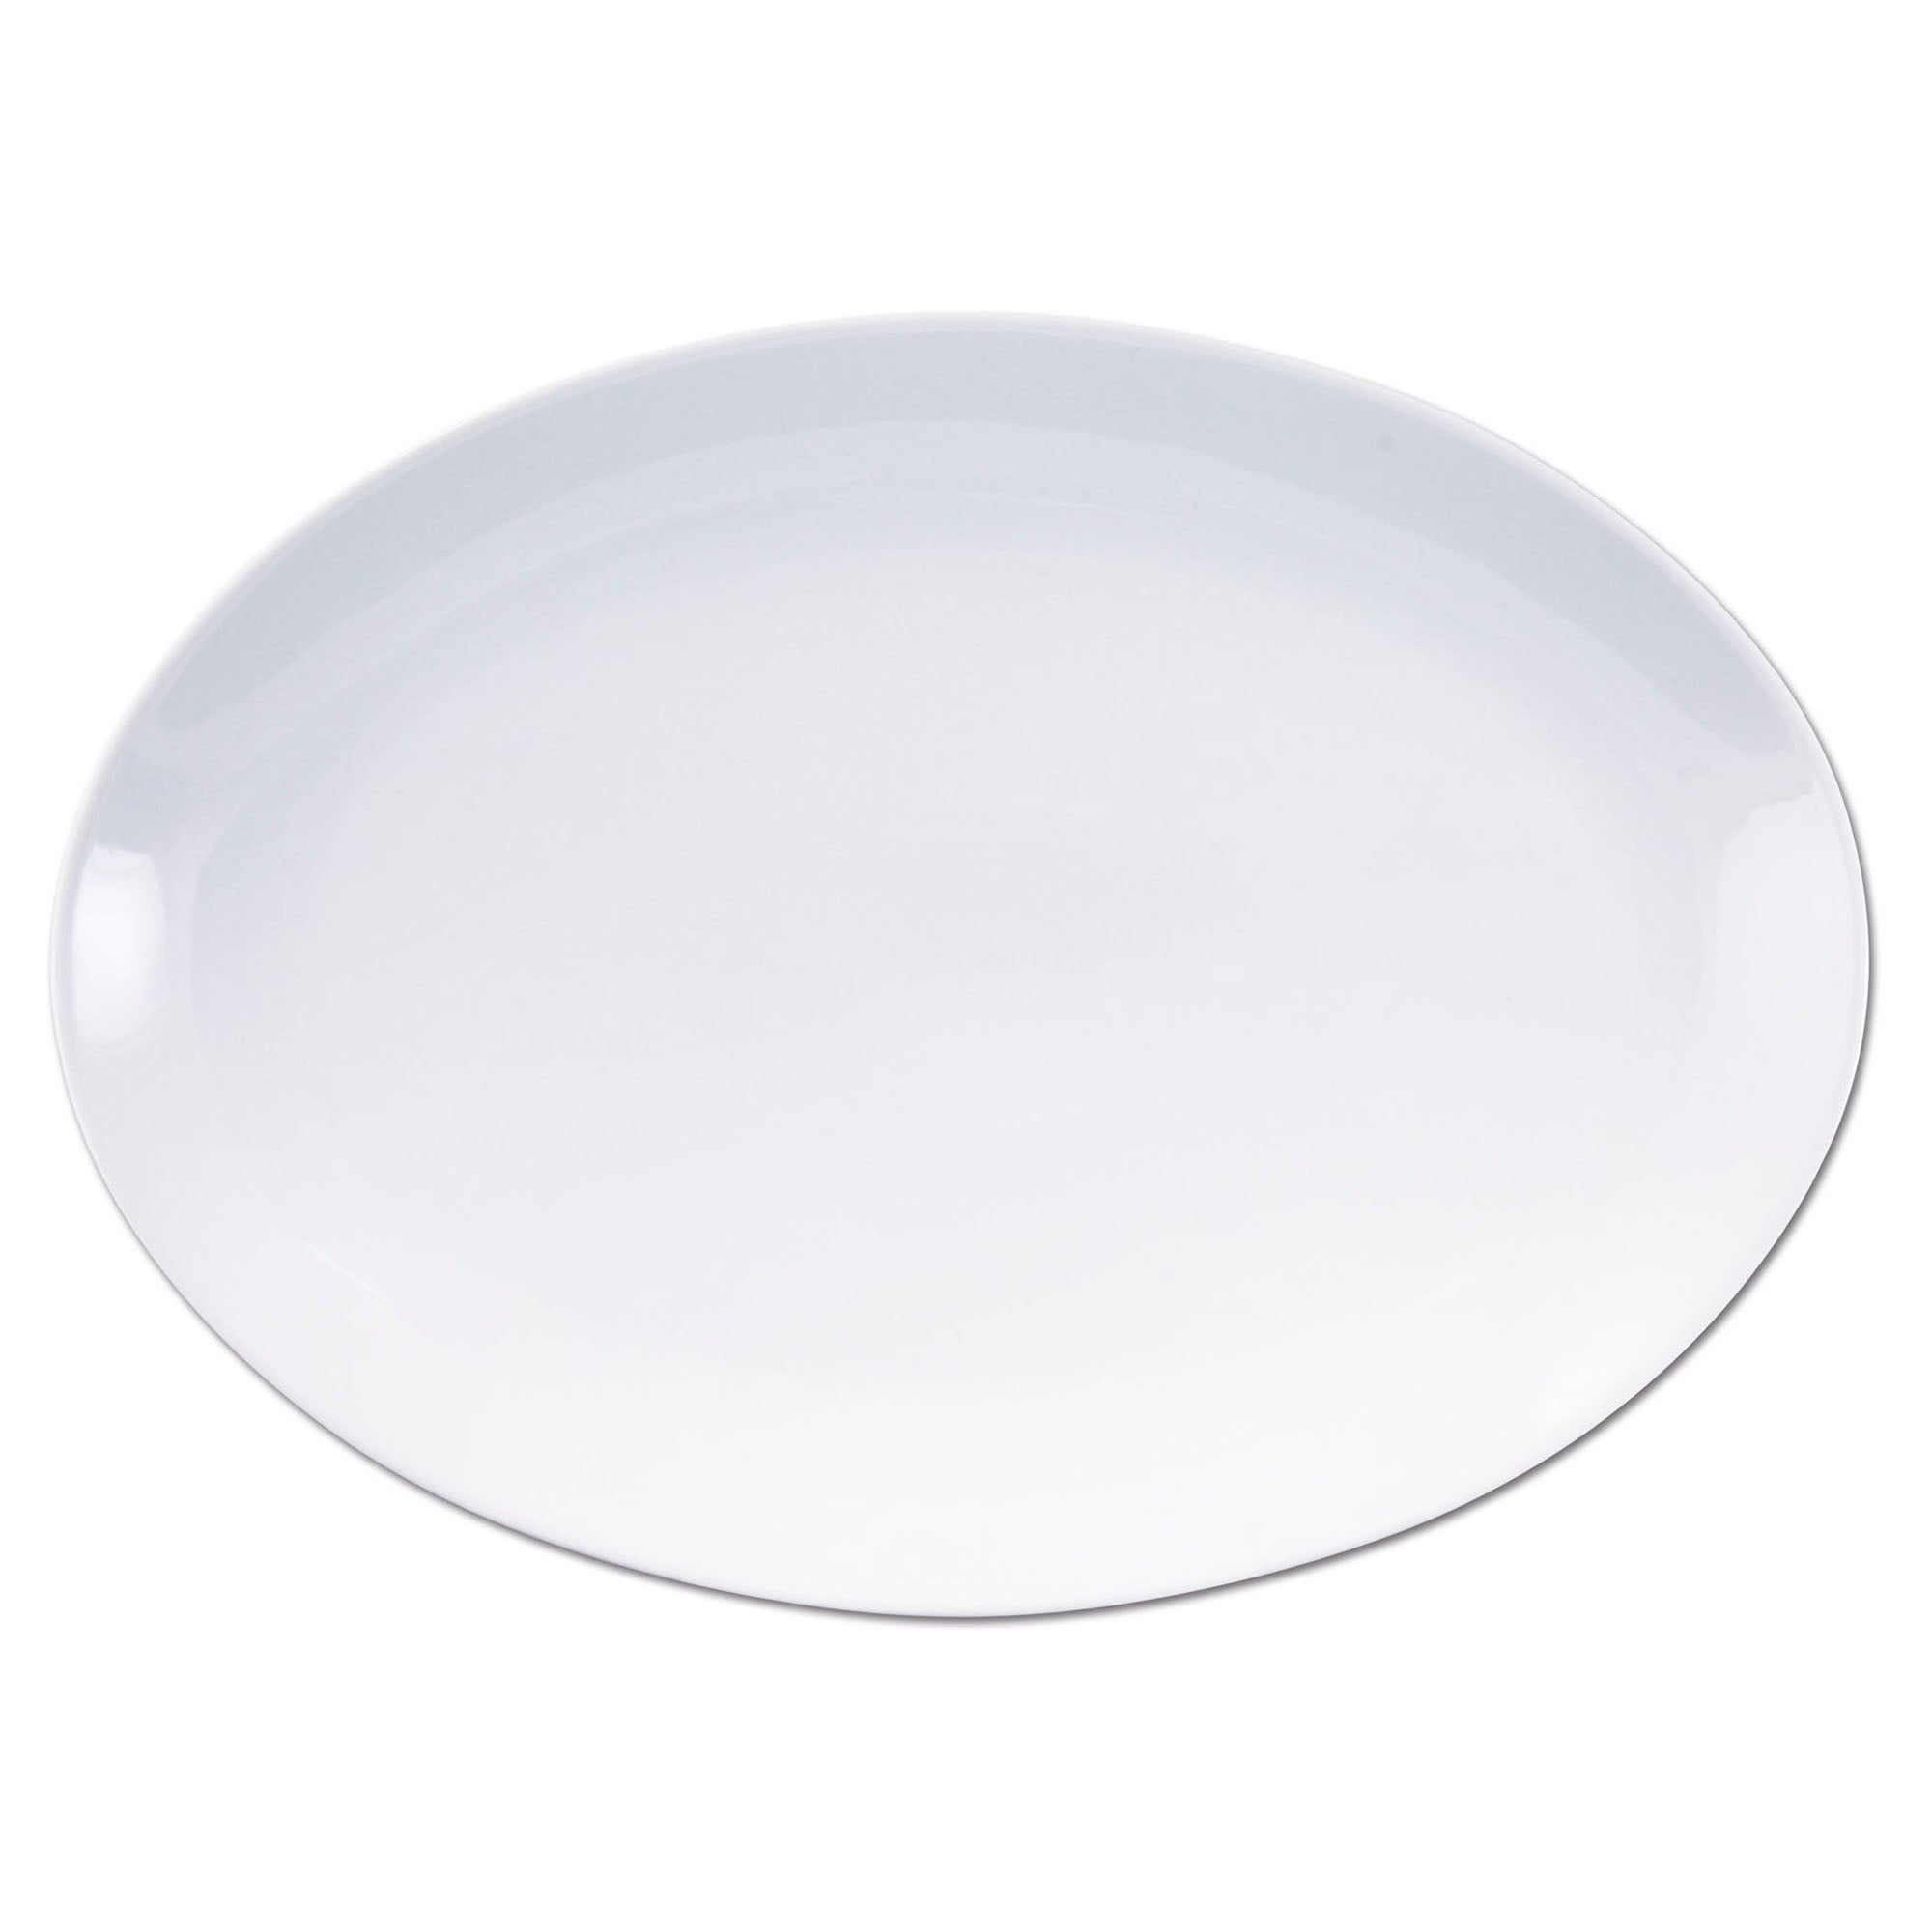 Purity Collection Oval Platter